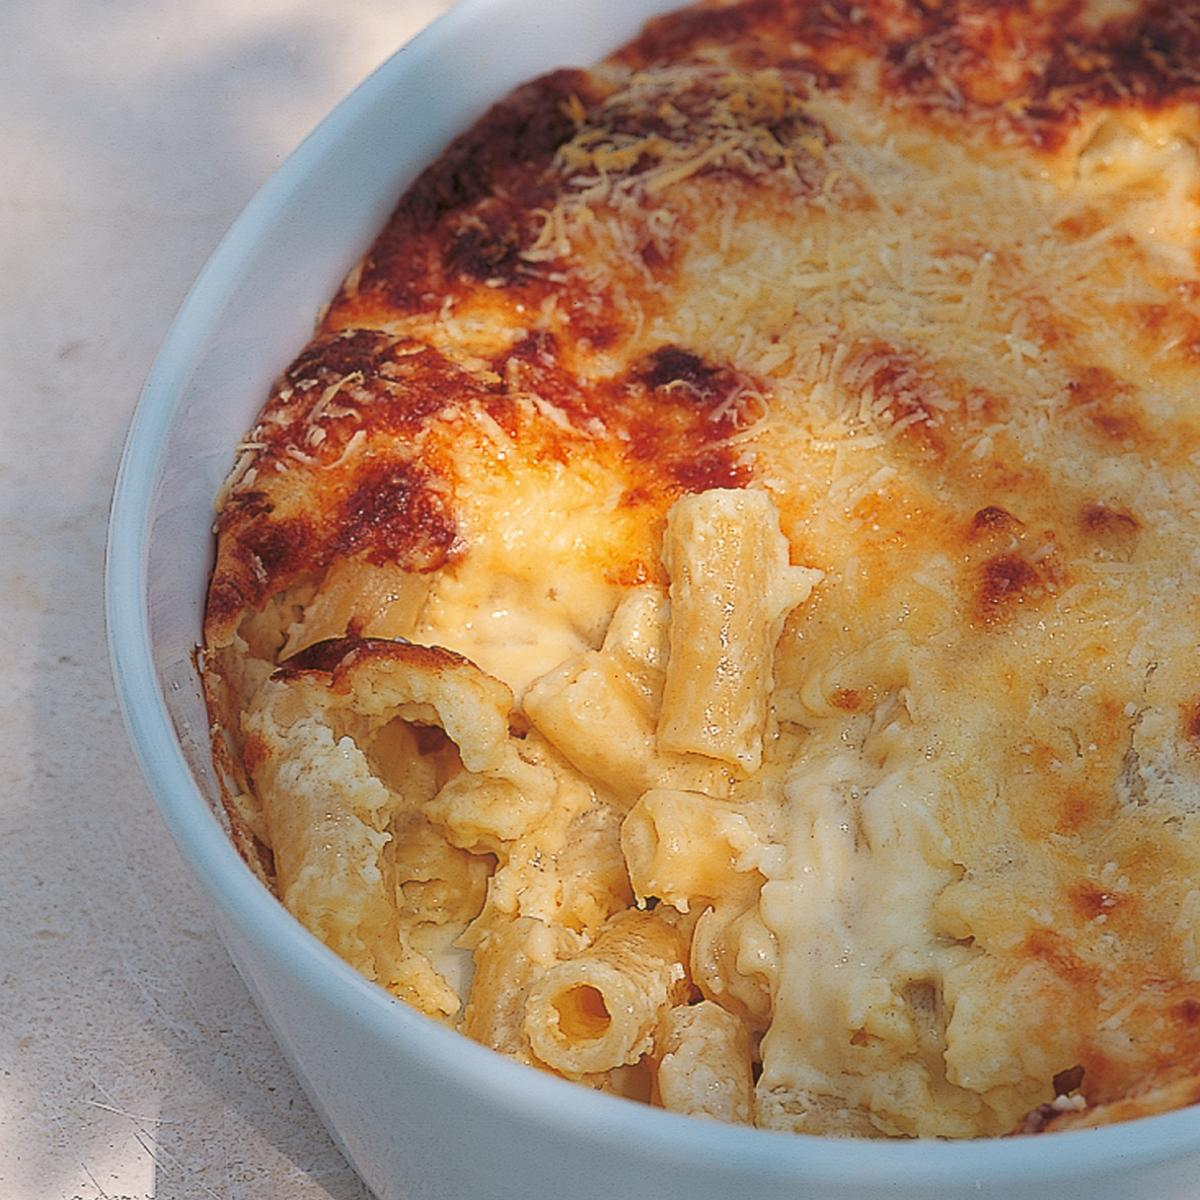 A picture of Delia's Souffled Macaroni Cheese recipe